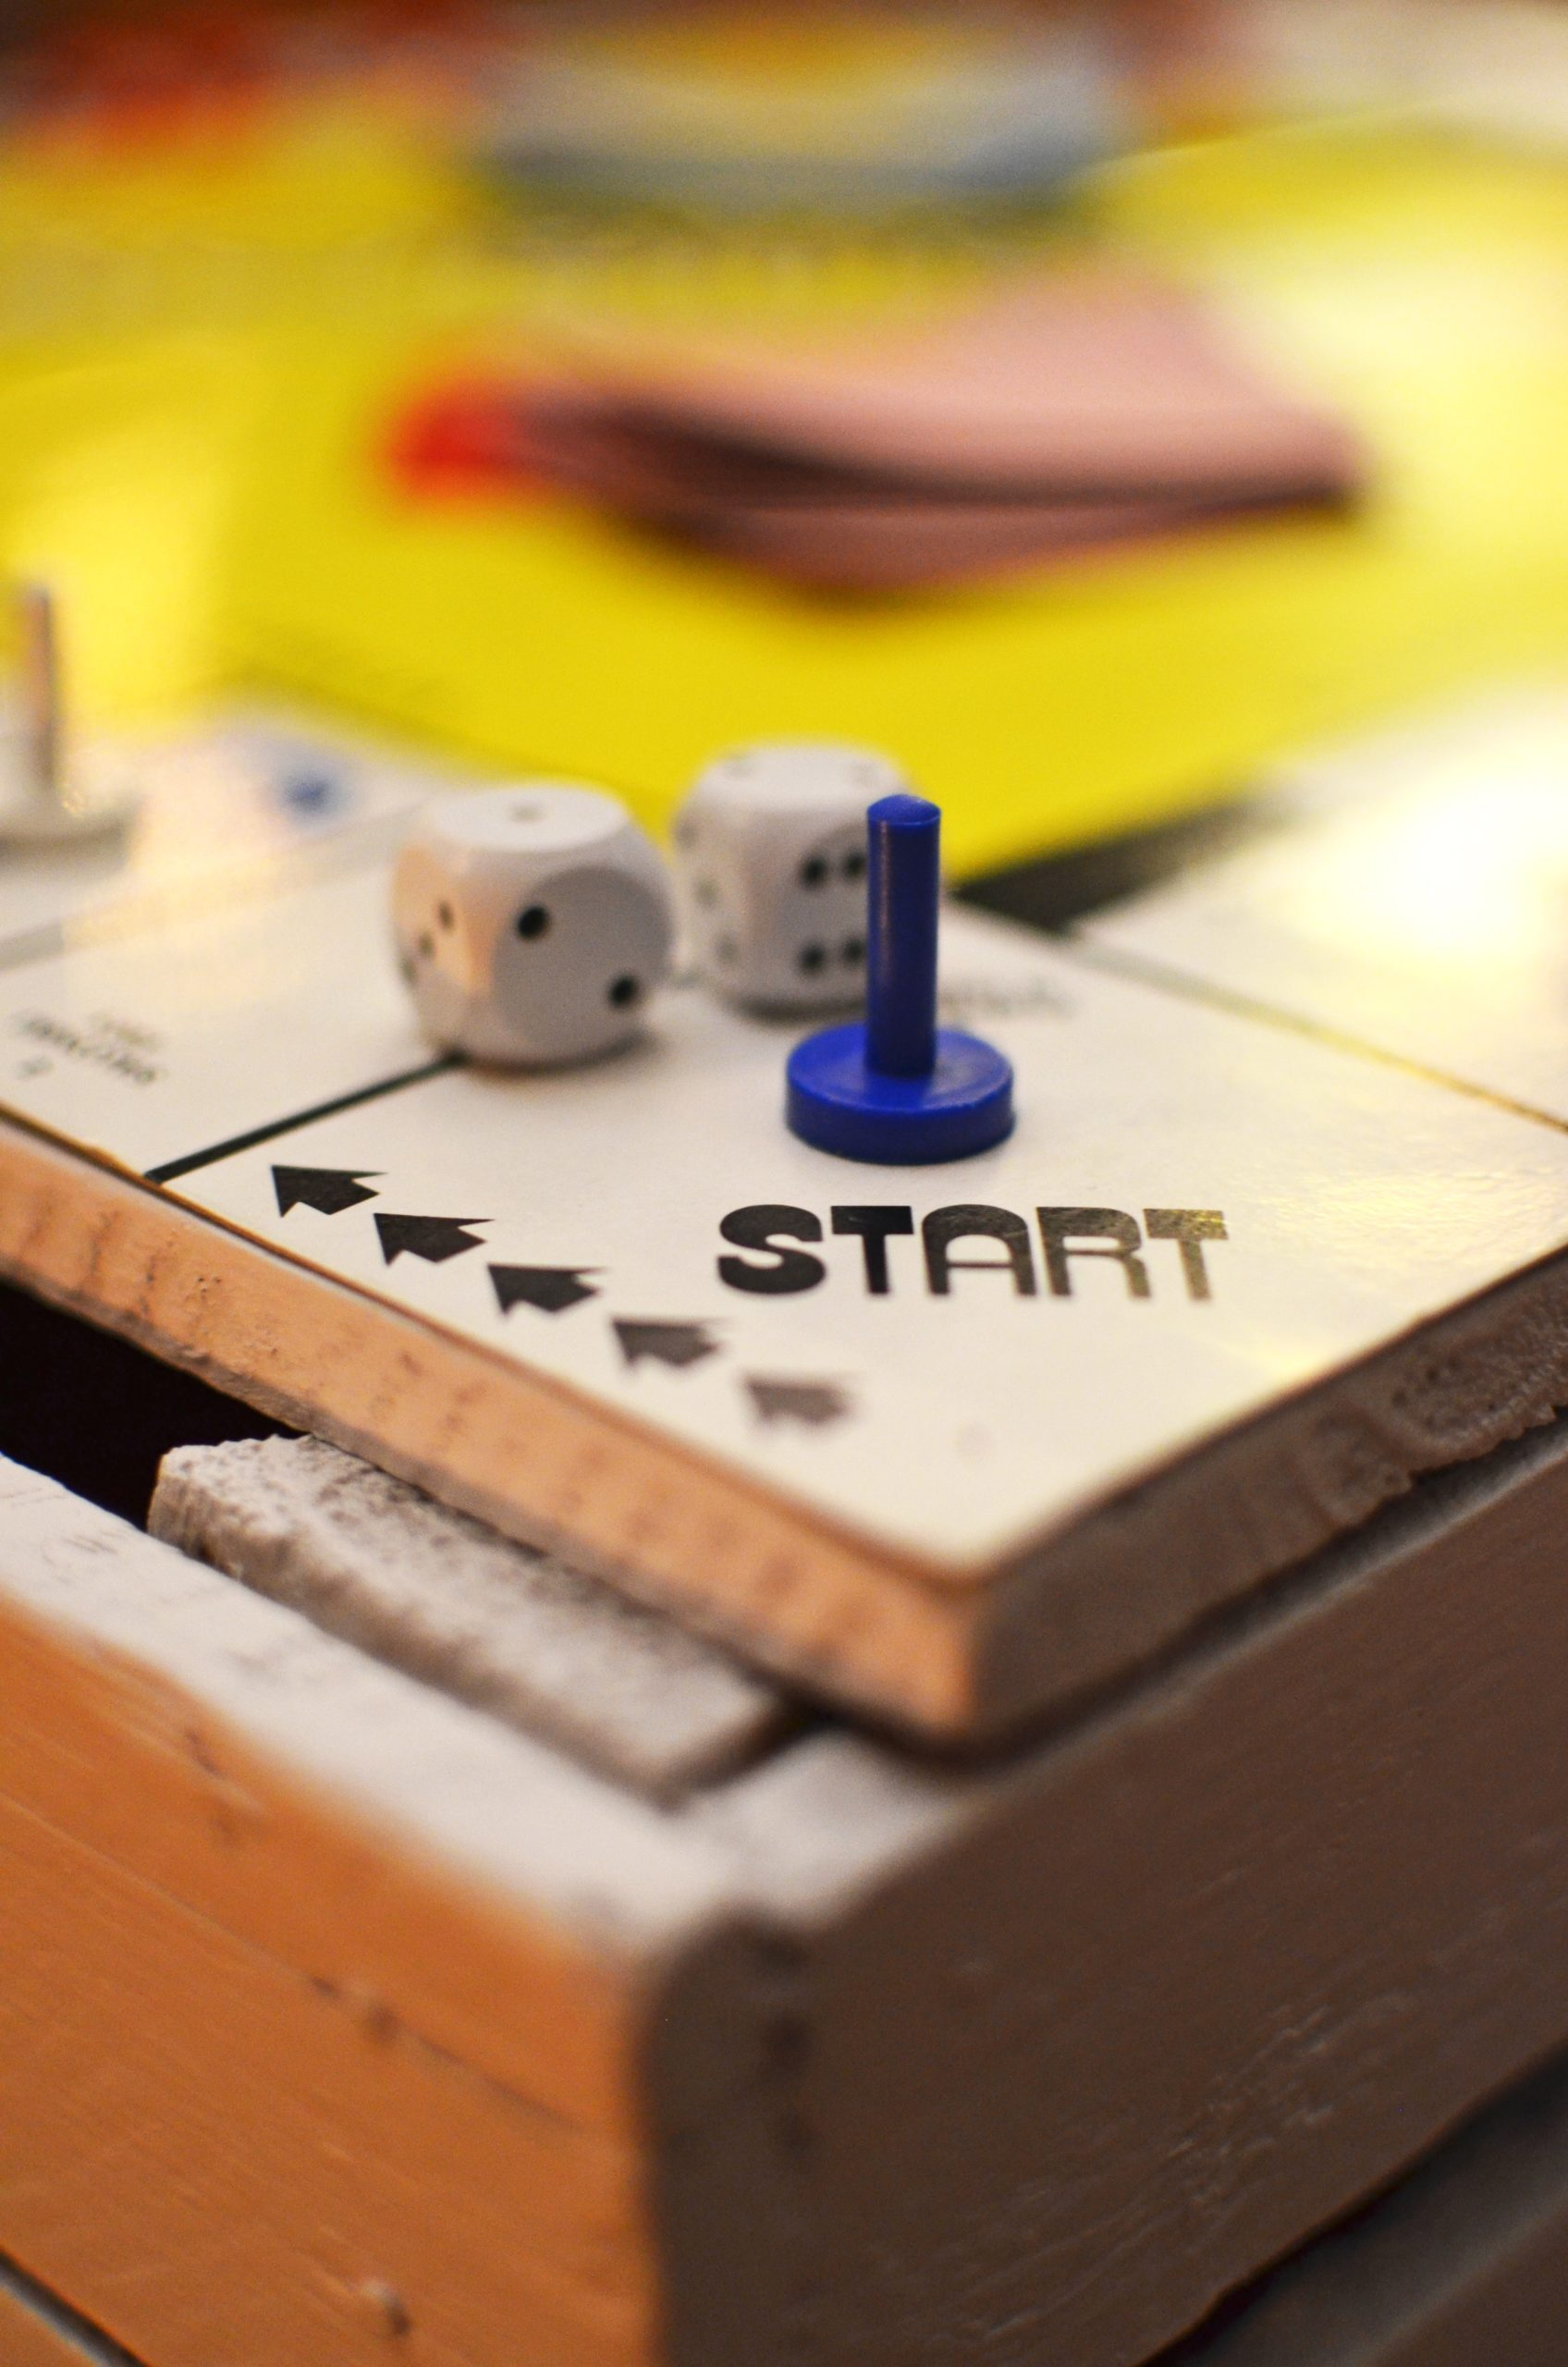 The start block of a game board.